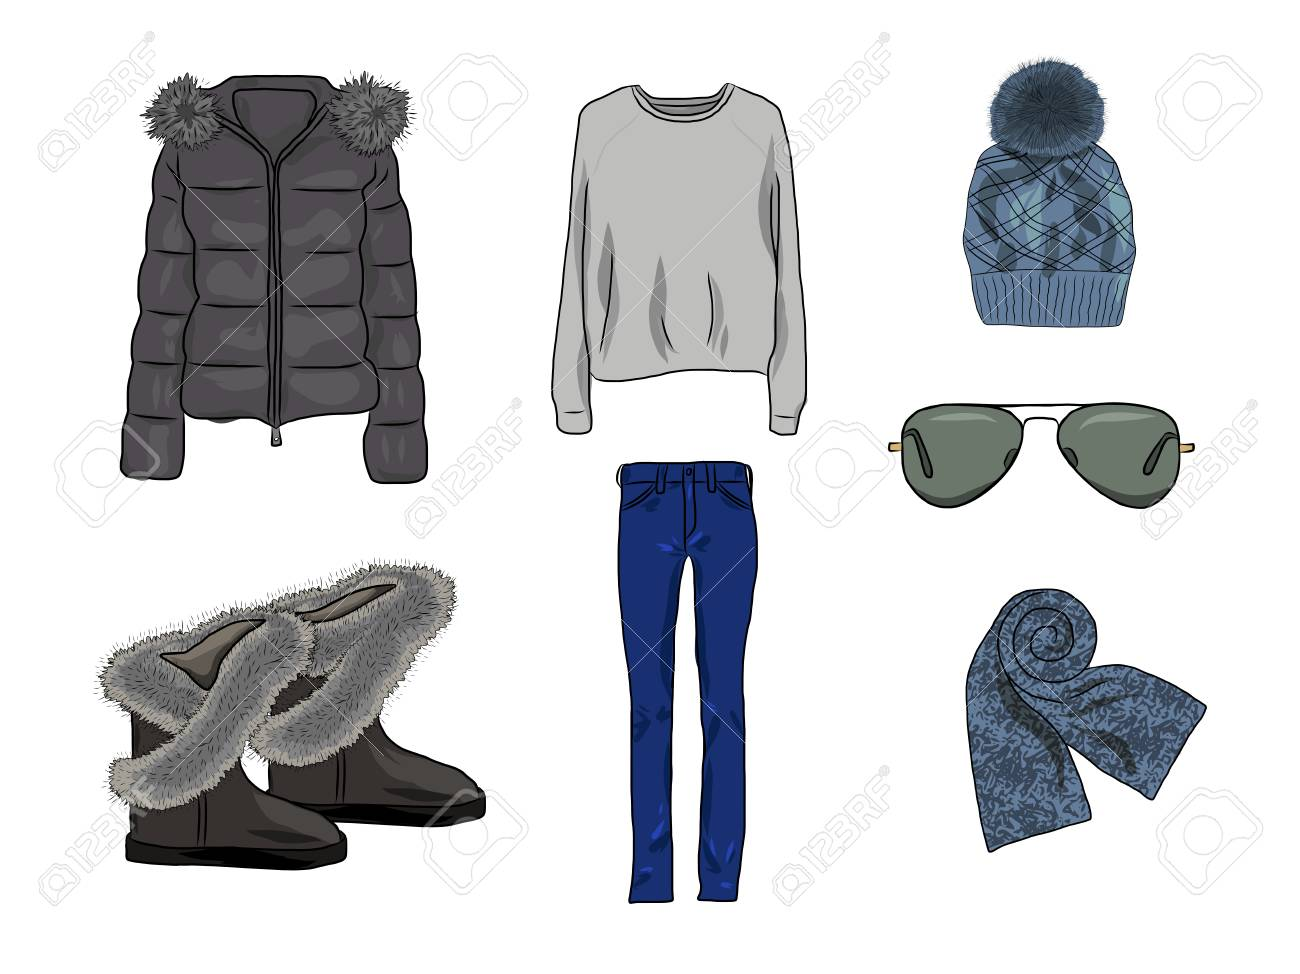 fc005ba8e61a Vector - Vector stylish fashion set of woman autumn, spring or winter  clothes and accessories. Casual colorful outfit with jacket, jumper, cap,  glases, ...